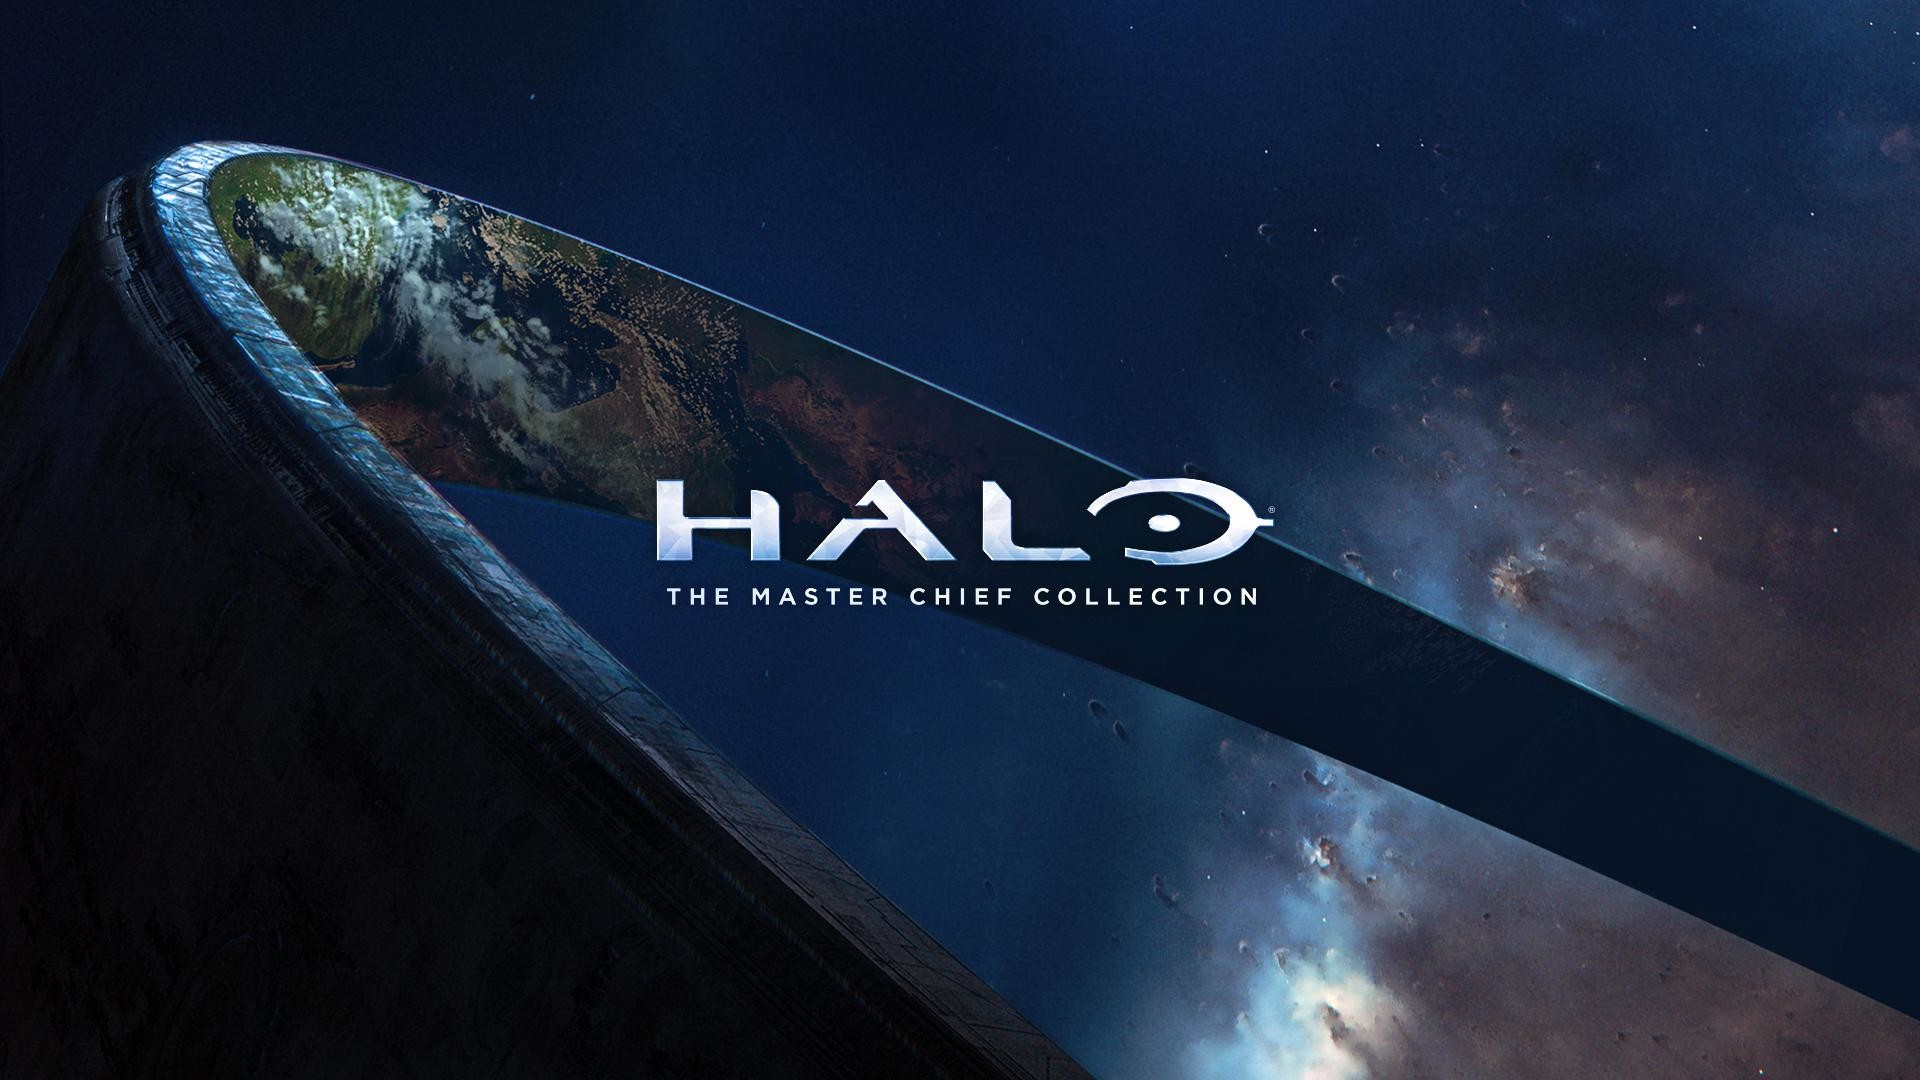 Halo Oni Wallpaper 69 Images